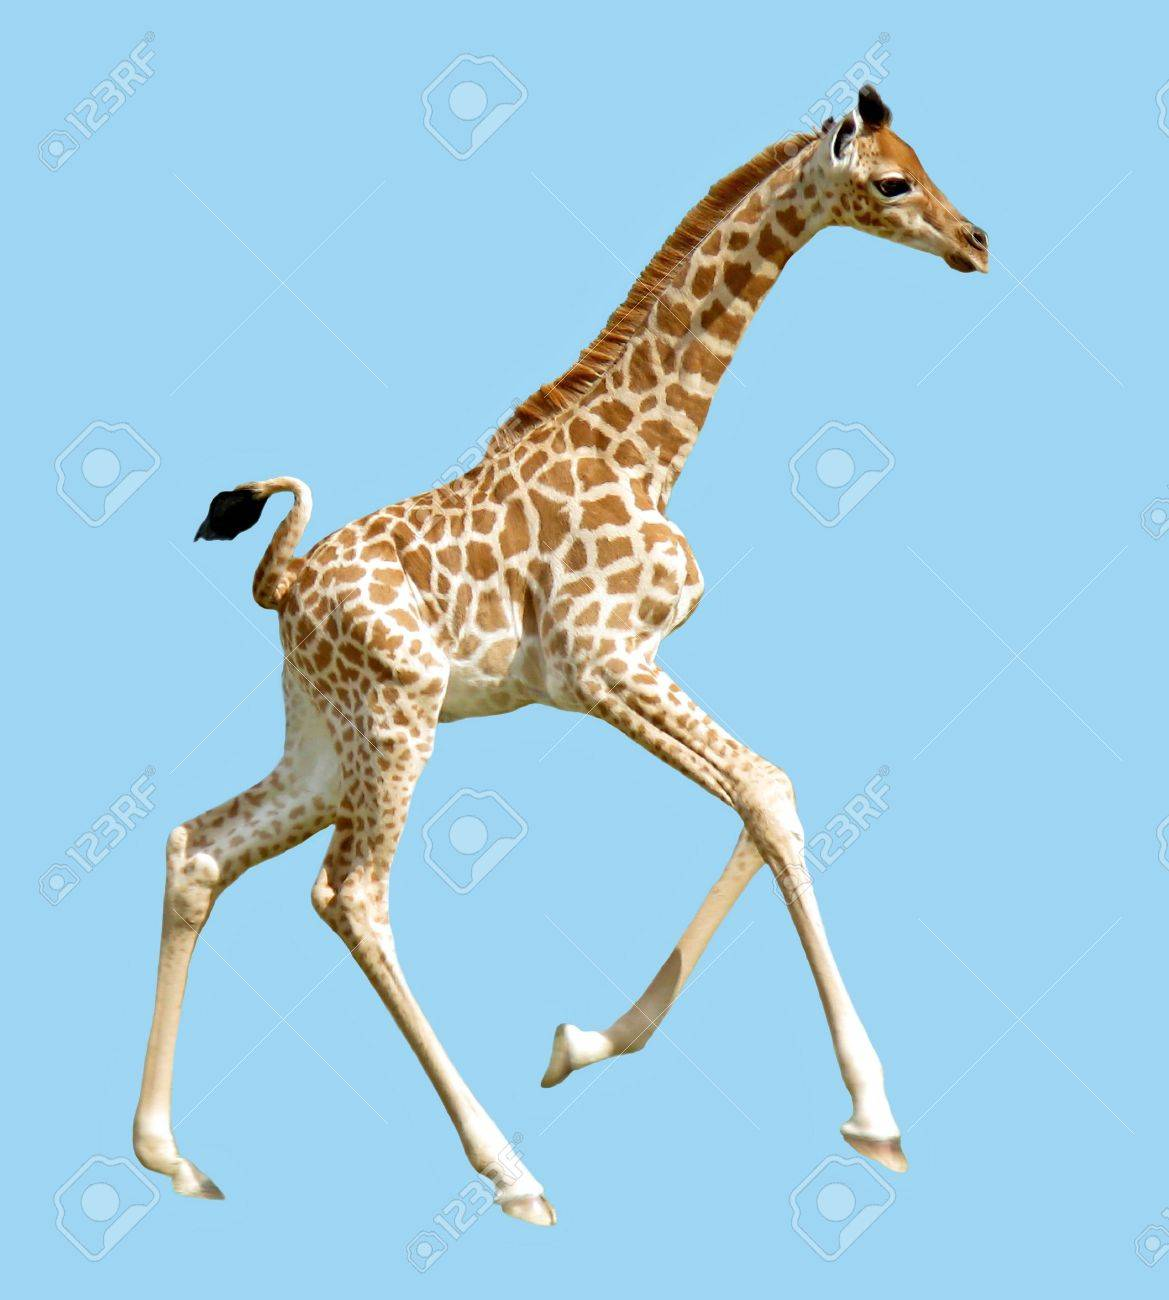 Isolated Baby Giraffe Running Stock Photo Picture And Royalty Free